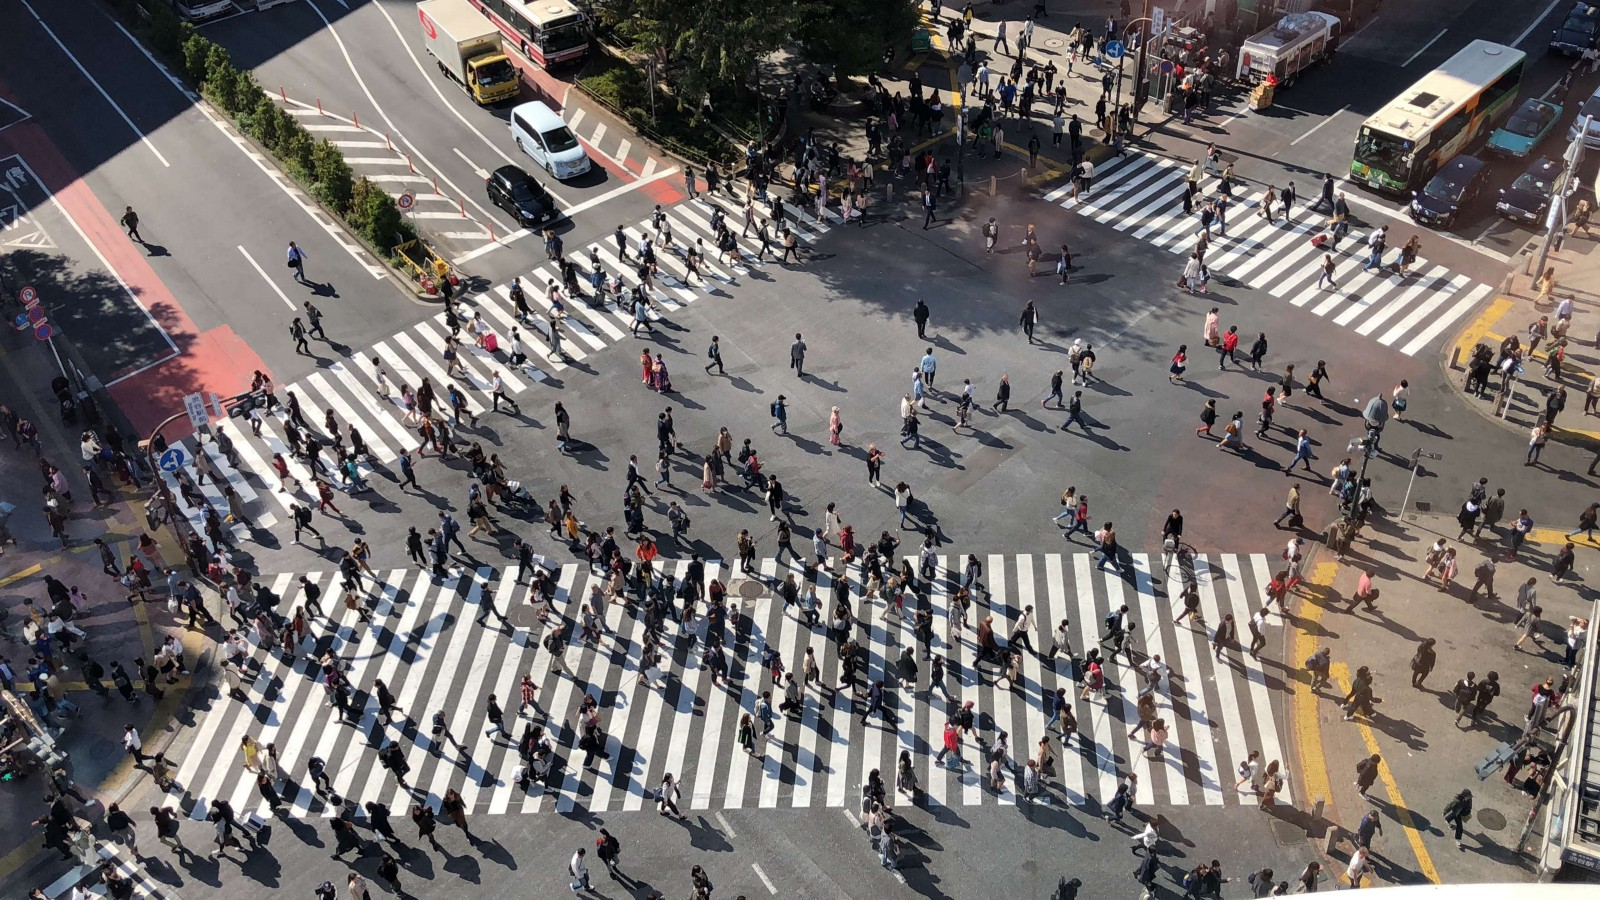 People crossing Shibuya Crossing